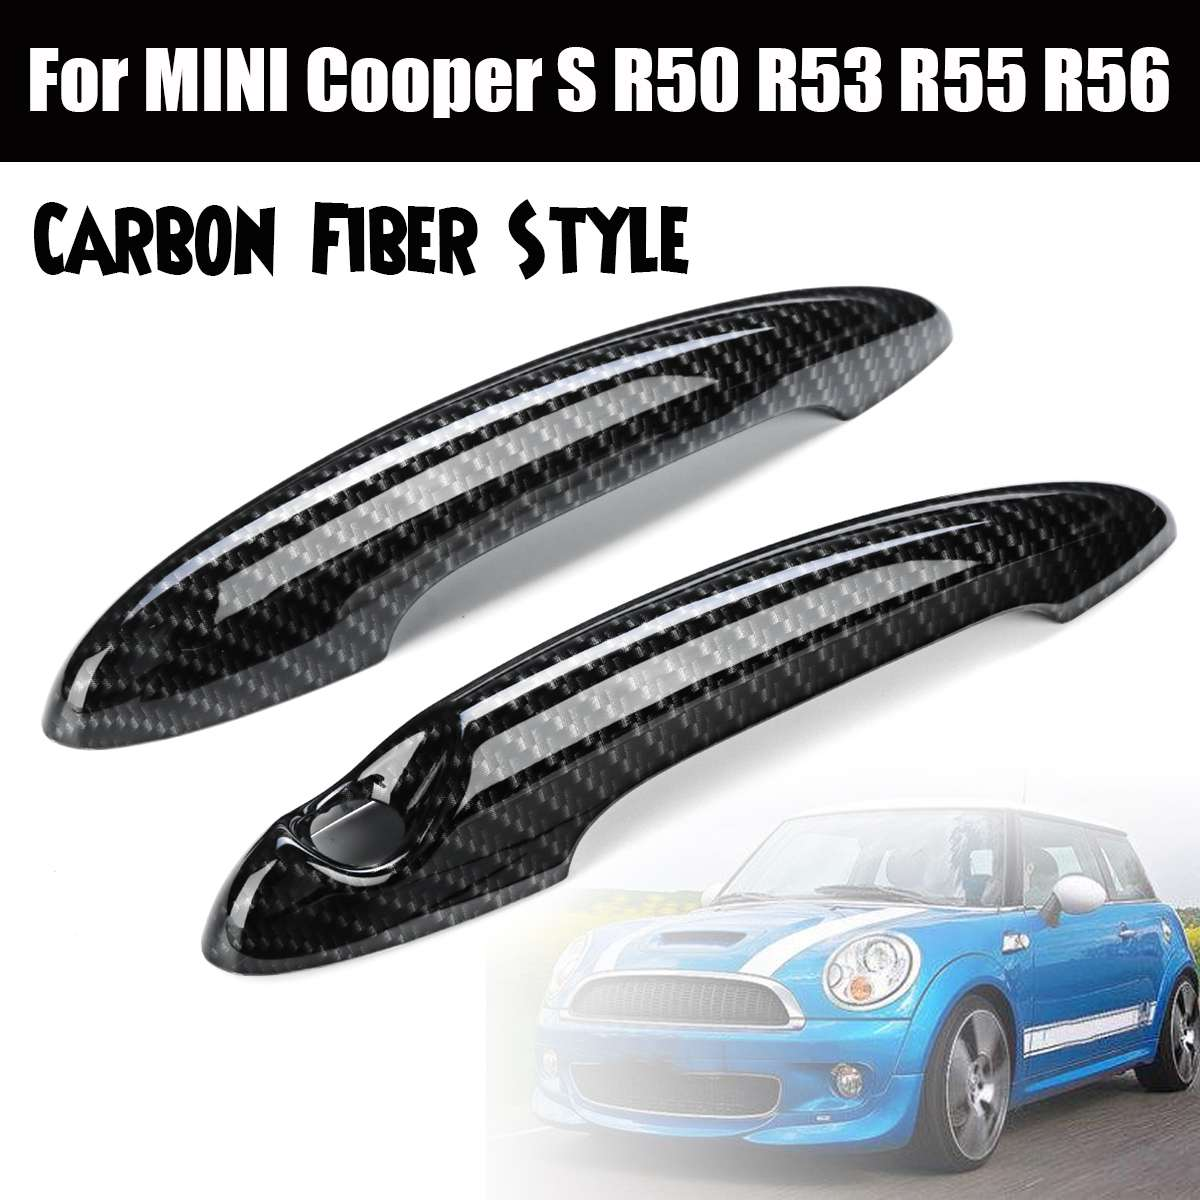 2pcs Car Styling Exterior Door Handle Cover Trim ABS Fits For BMW For MINI CooperS R50 R53 R56 R55 Auto Exterior Parts